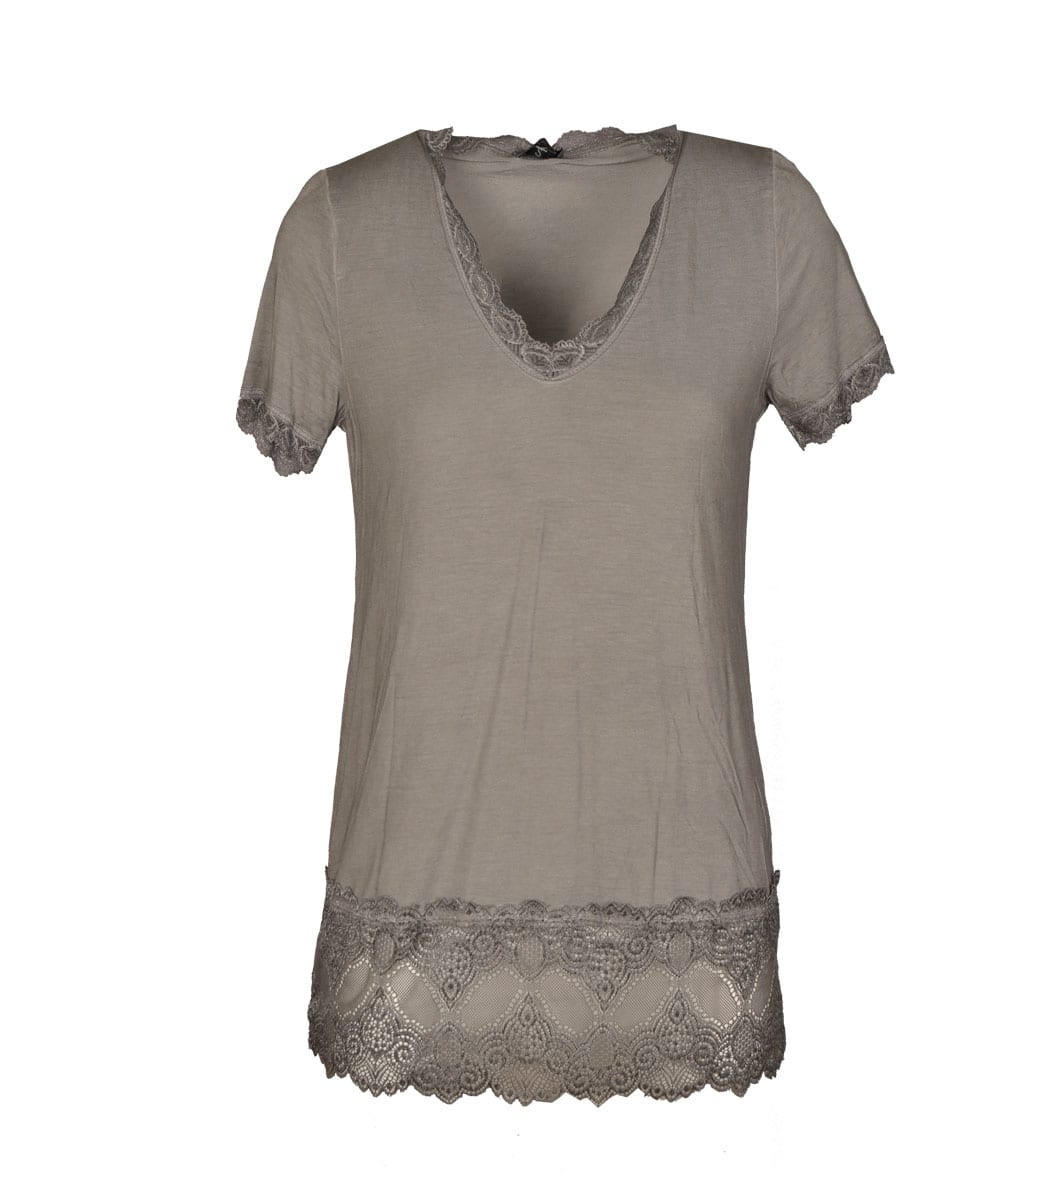 Lace trim v-neck short sleeve top